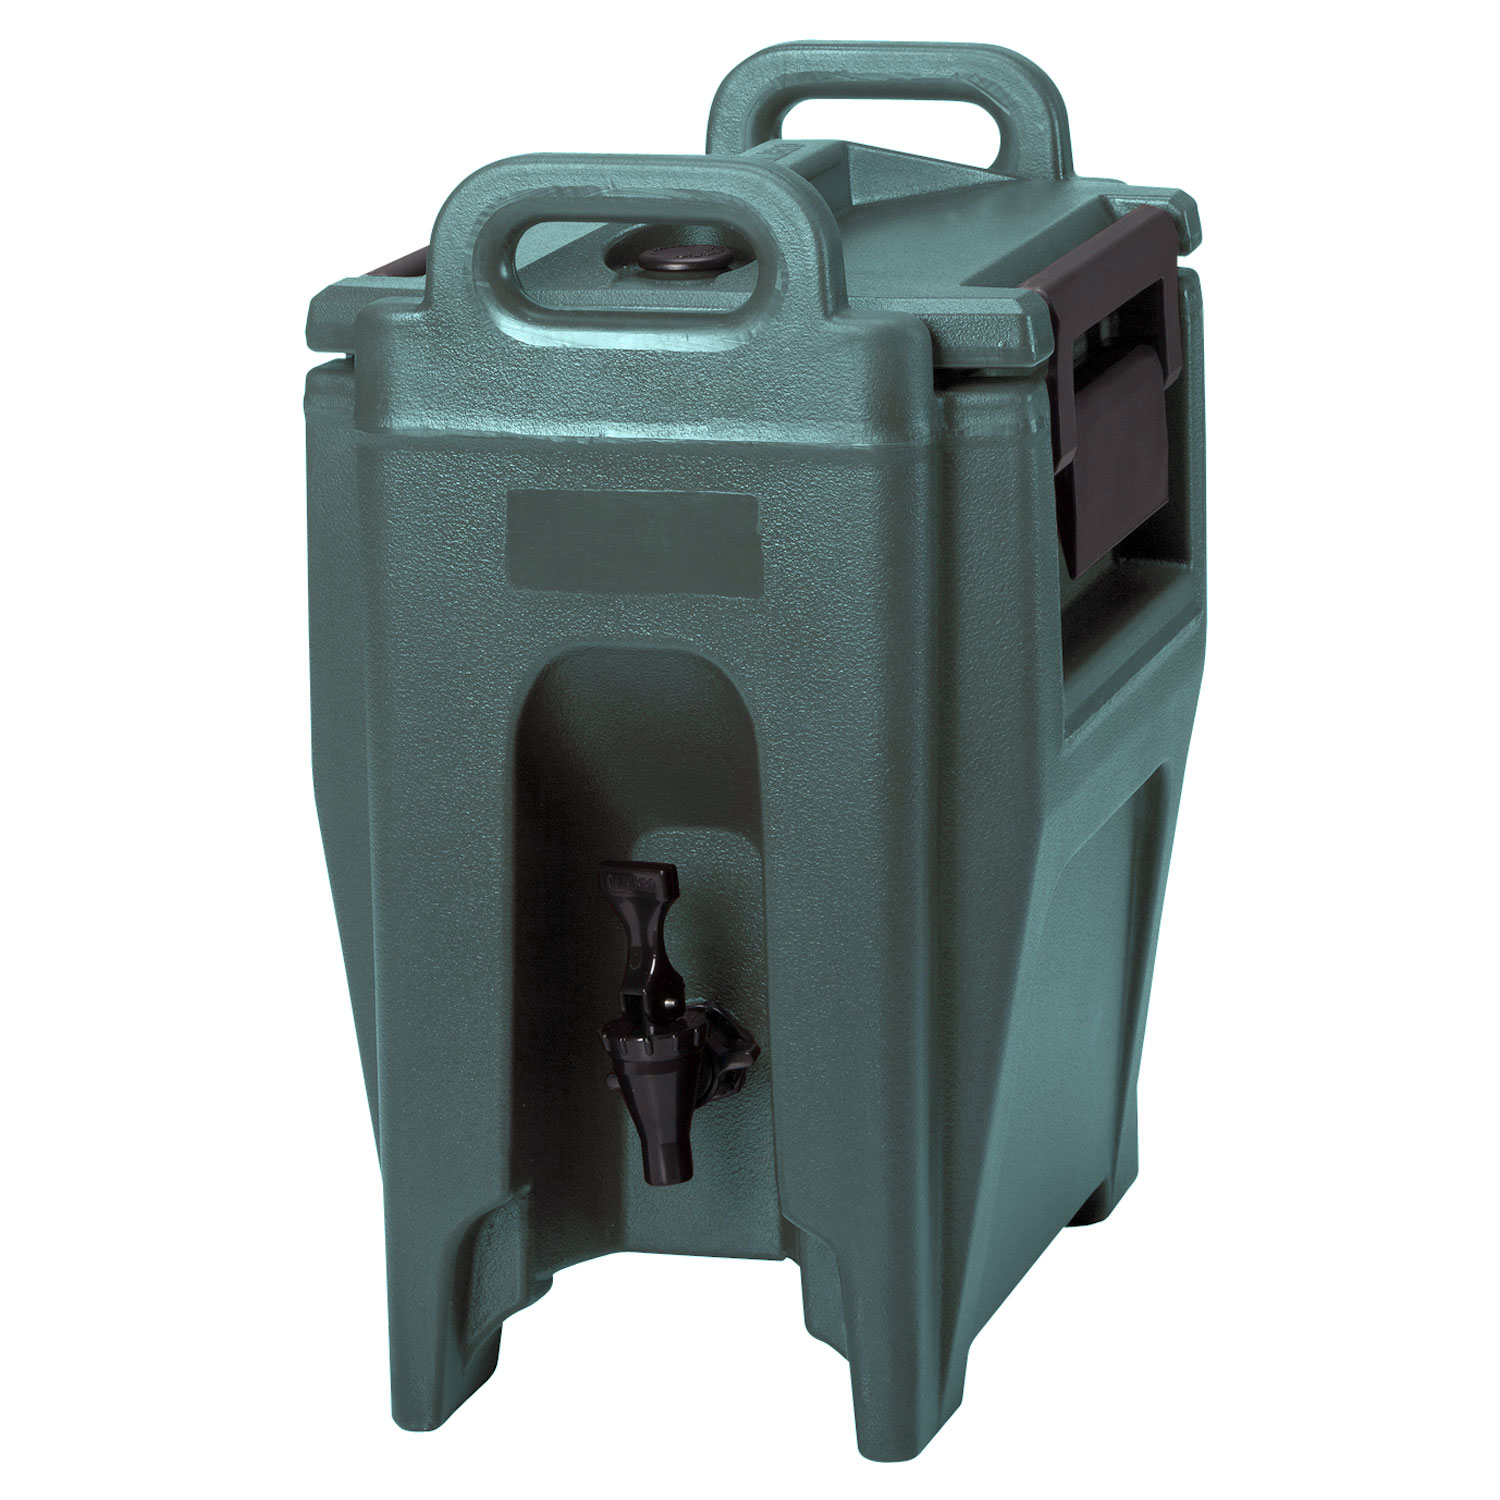 Cambro UC250192 2-3/4-gal Ultra Camtainer Beverage Carrier - Insulated, Granite Green